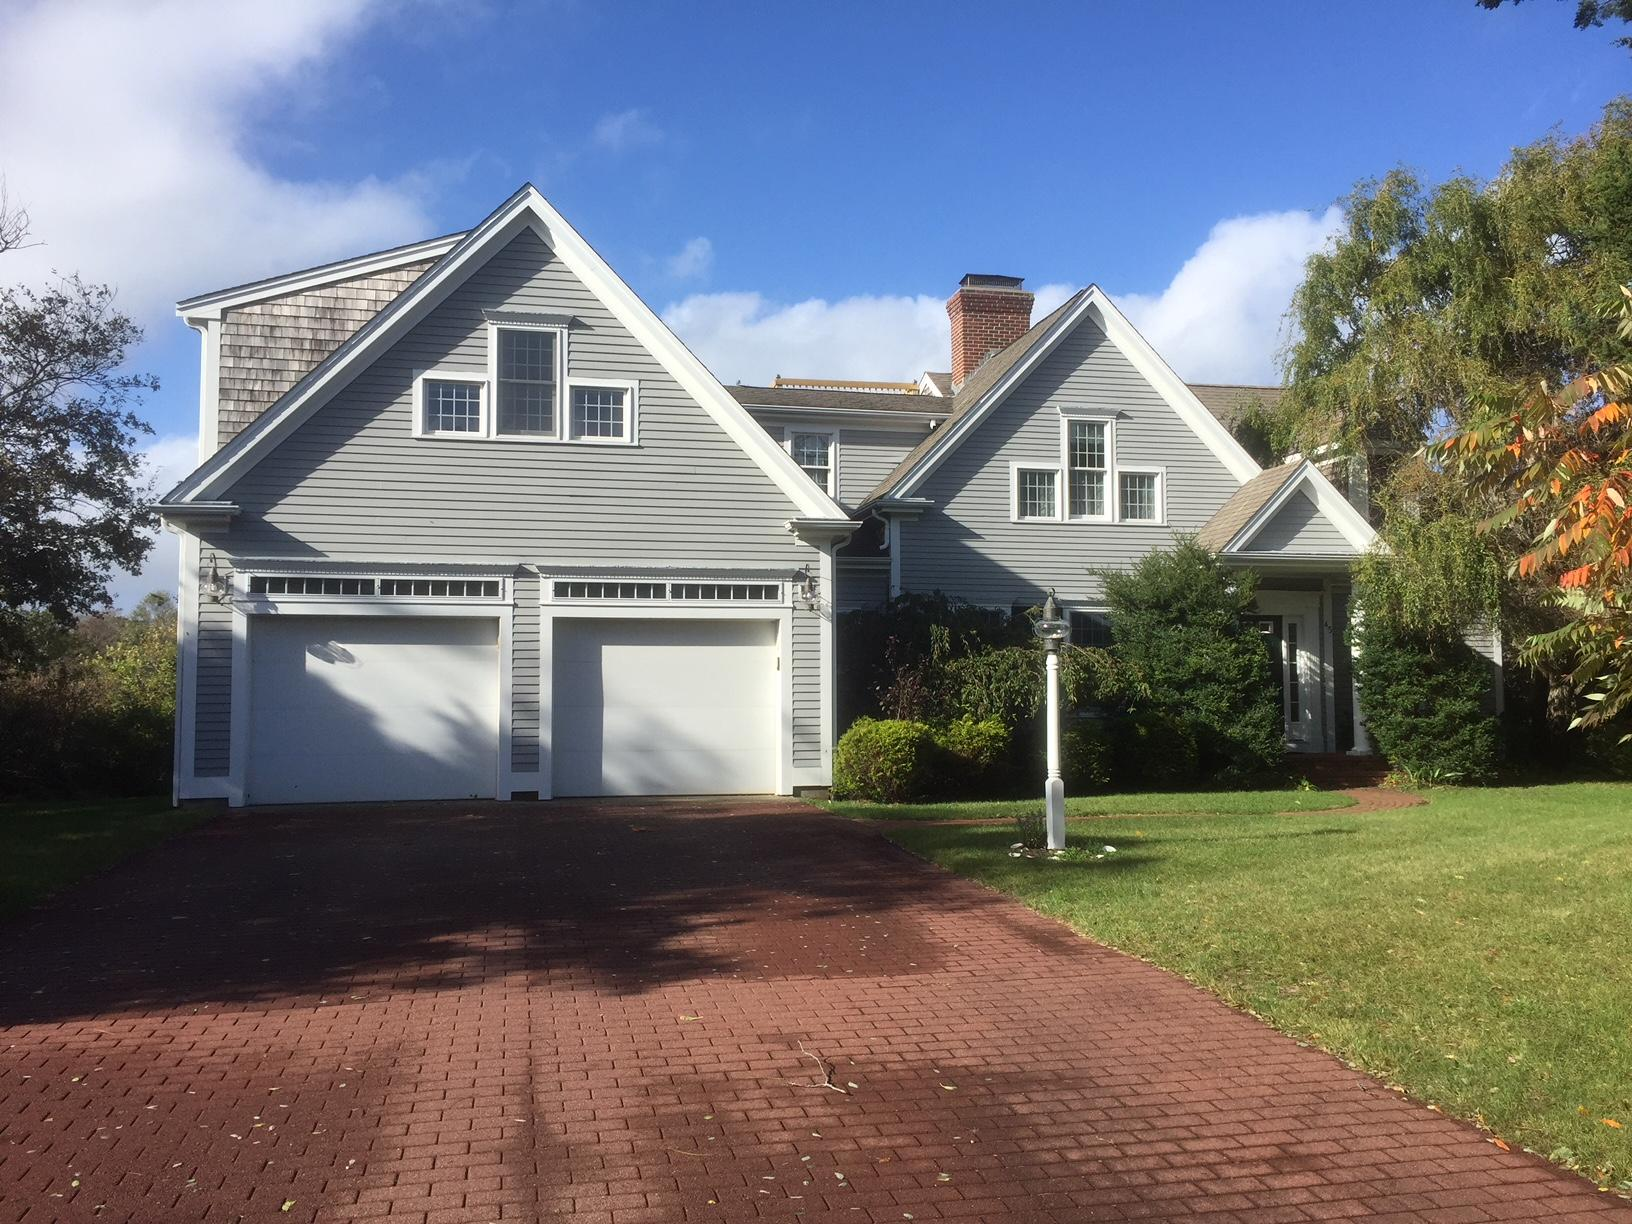 Single Family Home for Sale at 45 Jericho Road, Dennis, MA Dennis, 02638 United States